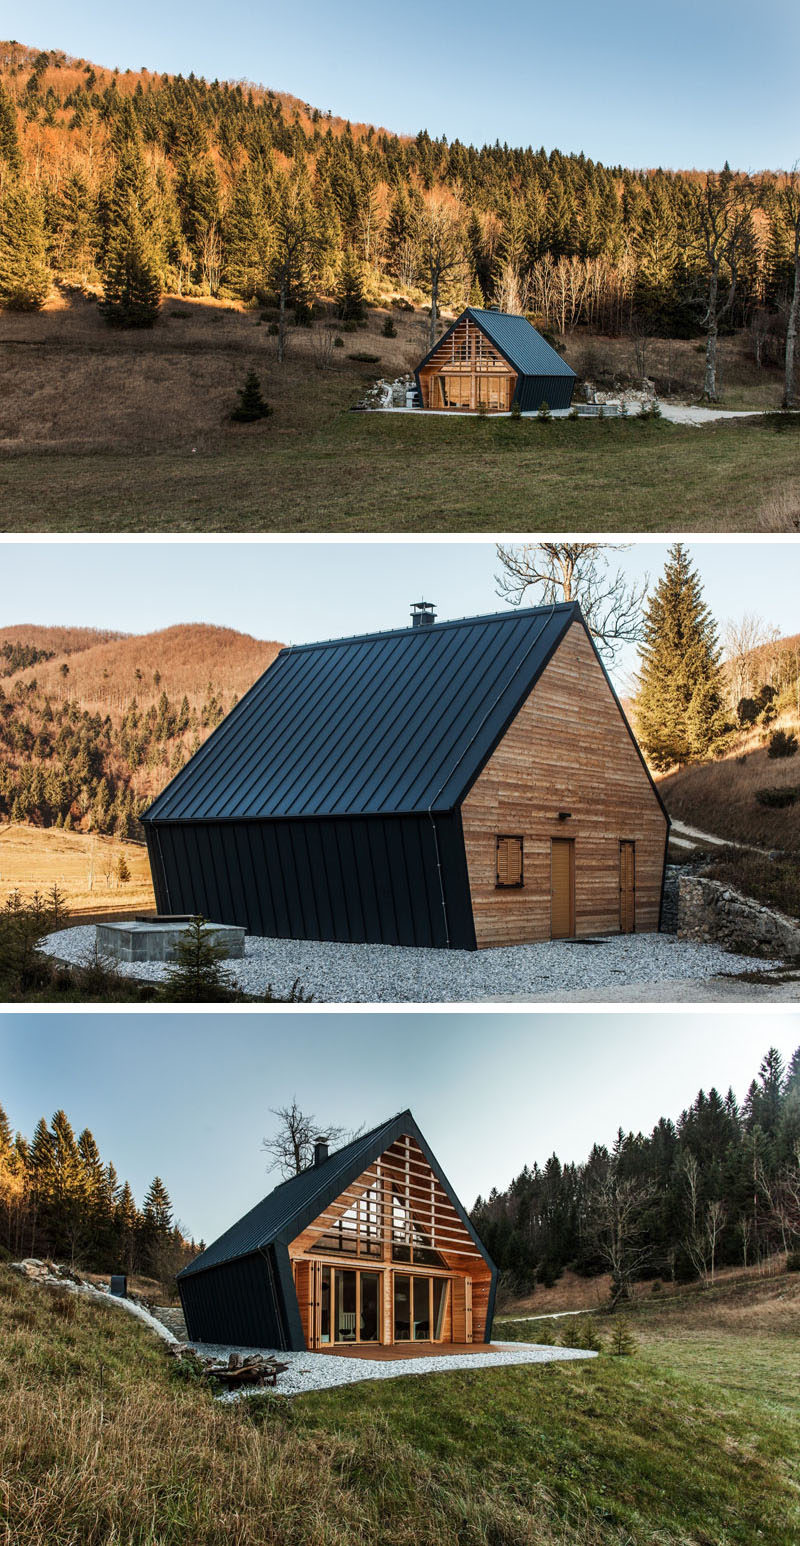 studio PIKAPLUS have designed this small two bedroom house surrounded by woods in Slovenia, that has an exterior of black siding and a softer light wood interior.